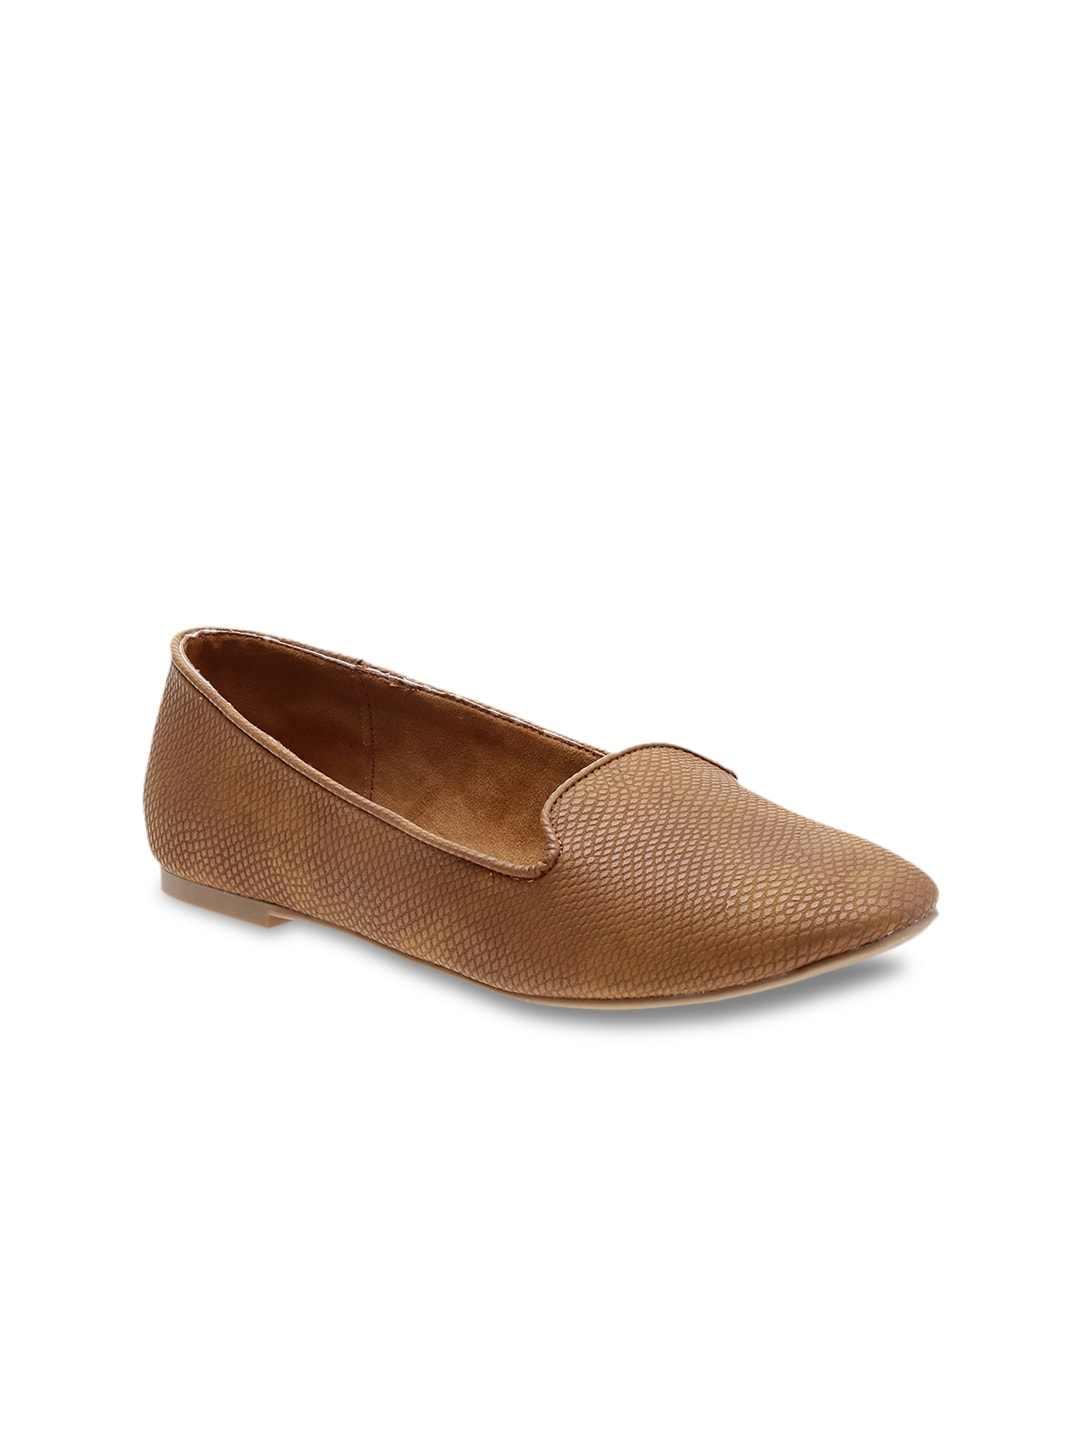 Call It Spring Women Brown Flats image